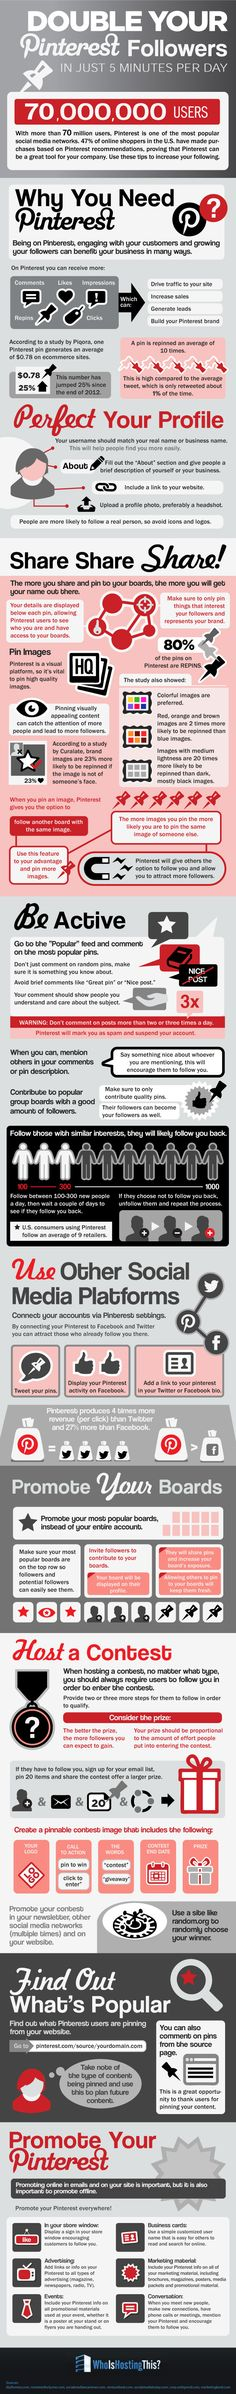 #how #to get more followers on #pinterest -- an #infographic. Great tips! Via http://thesearchmarketer.com.